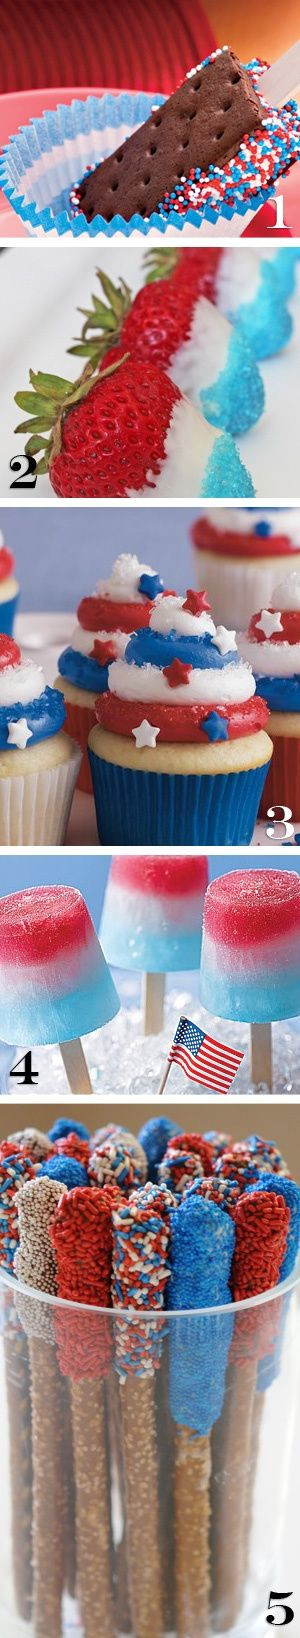 Desserts For 4Th Of July Party  17 Best images about crafts and food on Pinterest